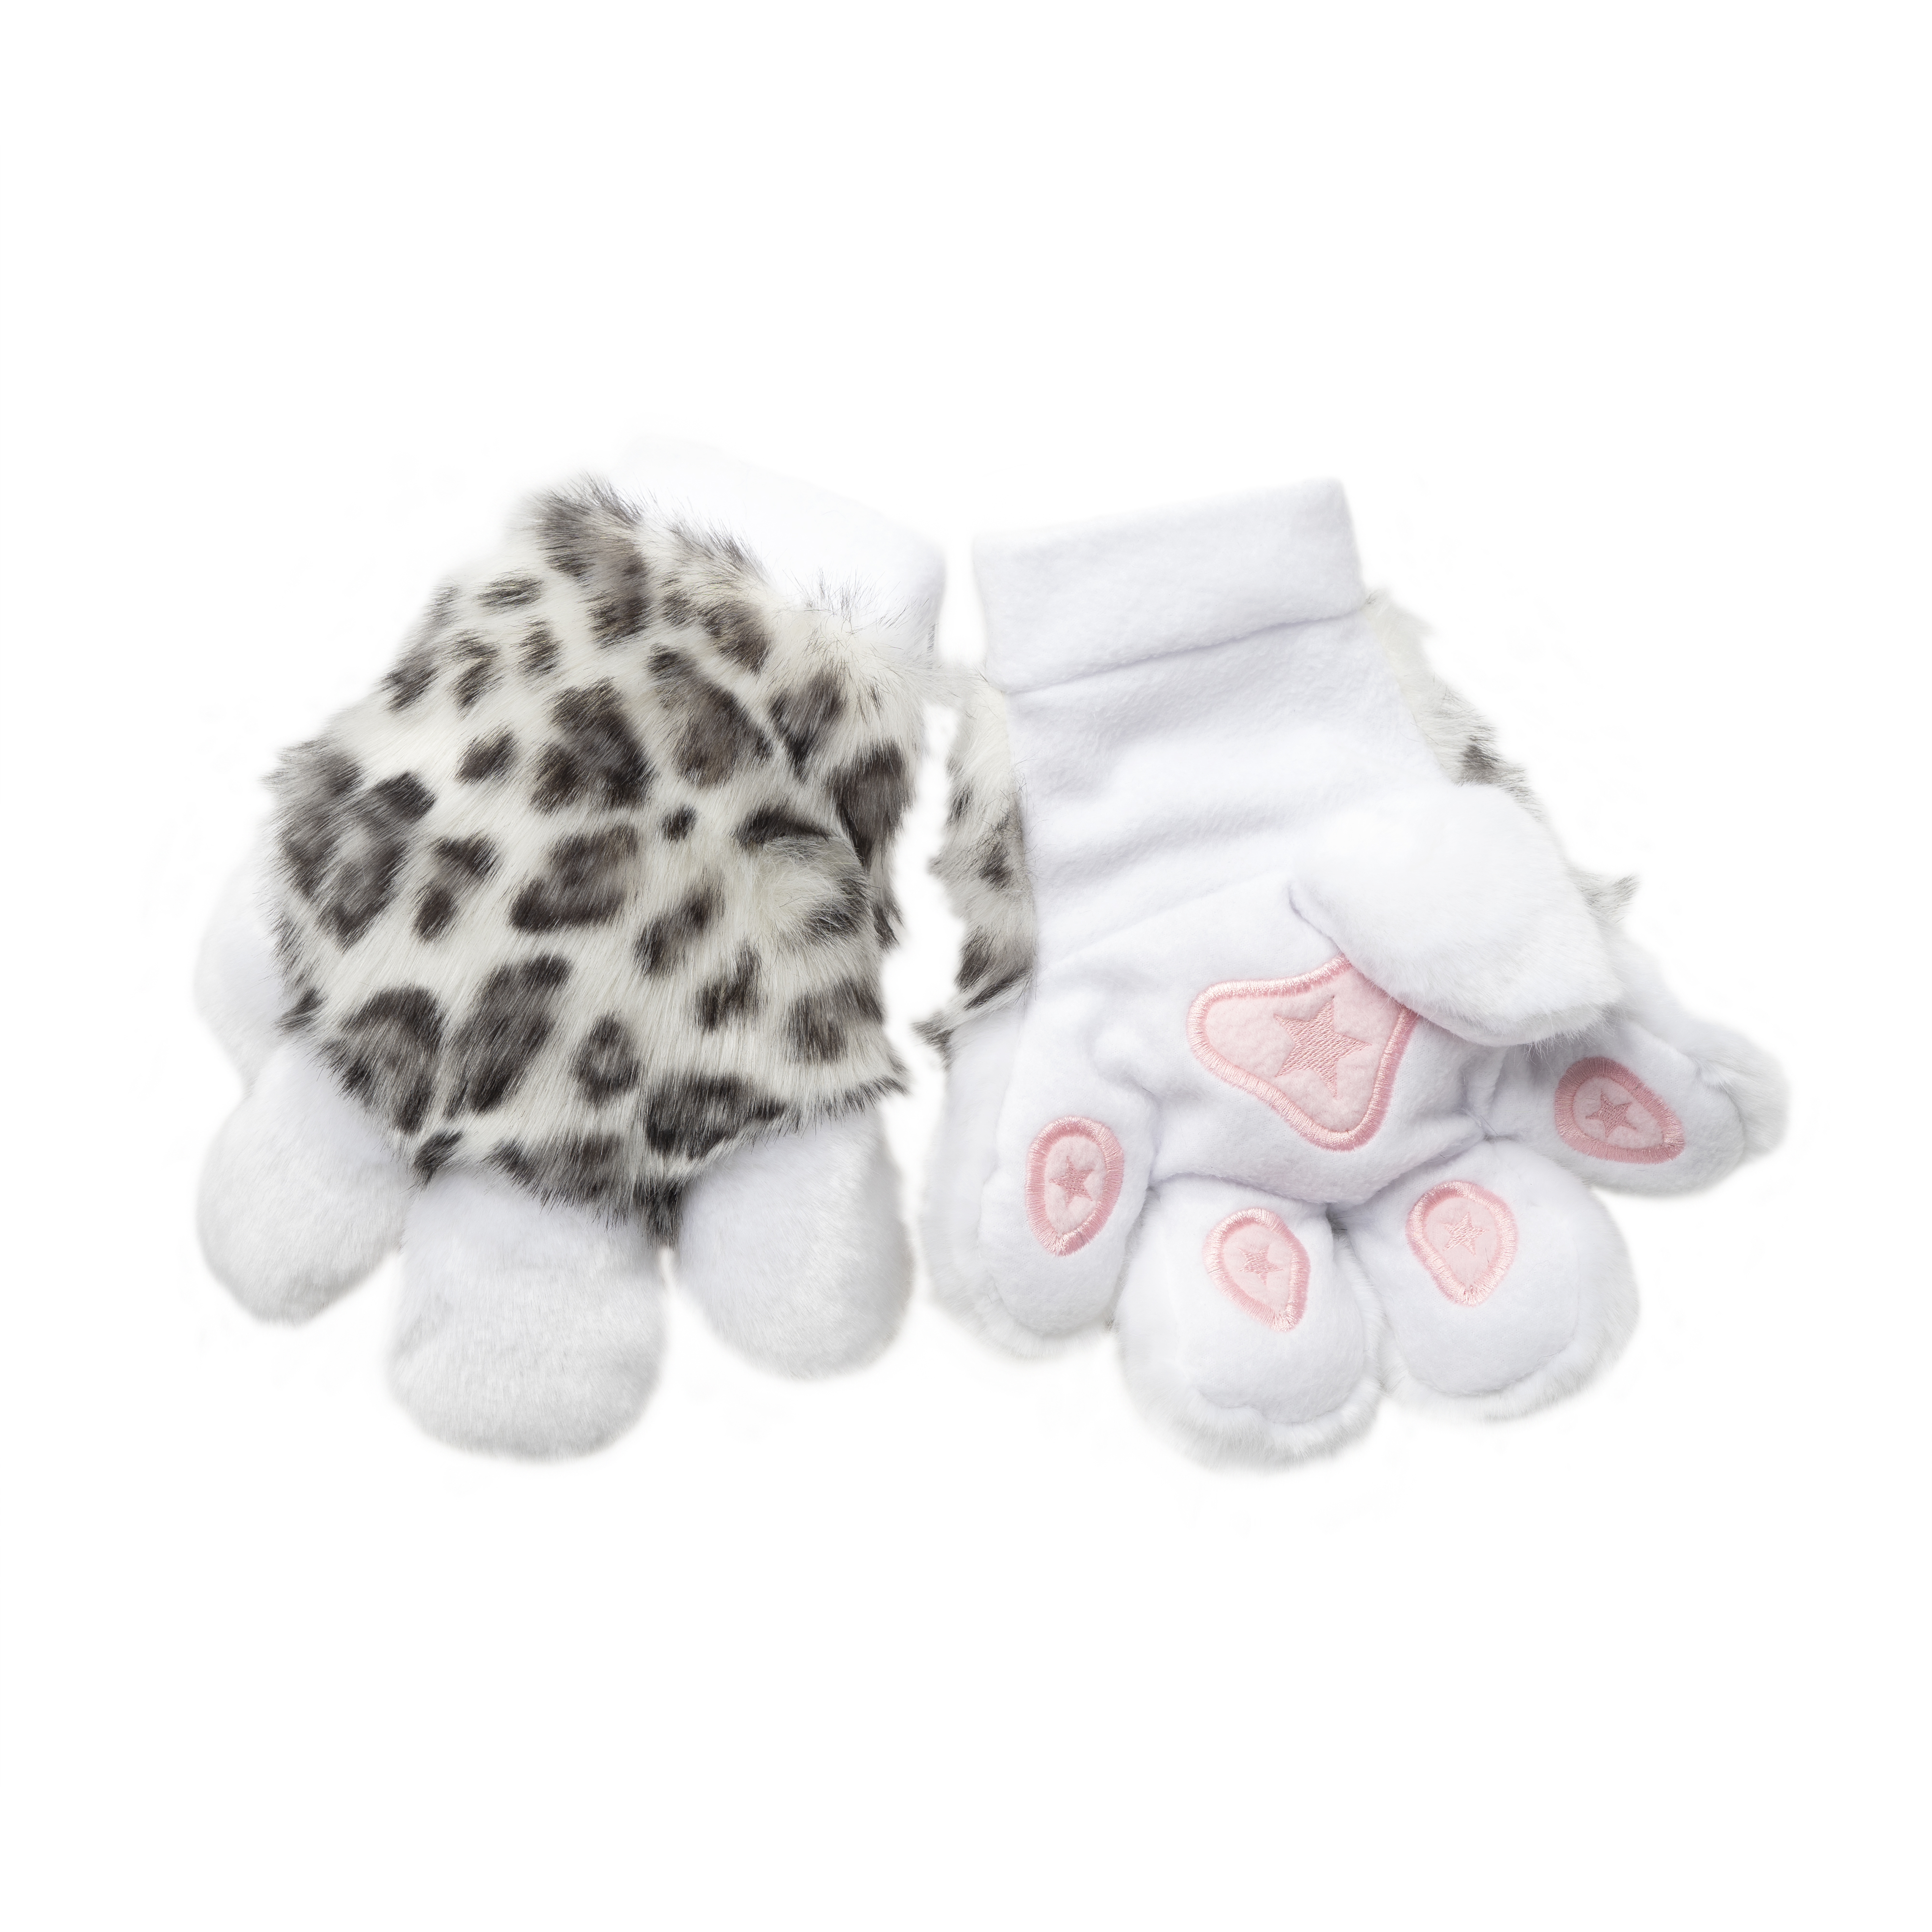 PawMitts Hand Paw Gloves - Leopard Fur